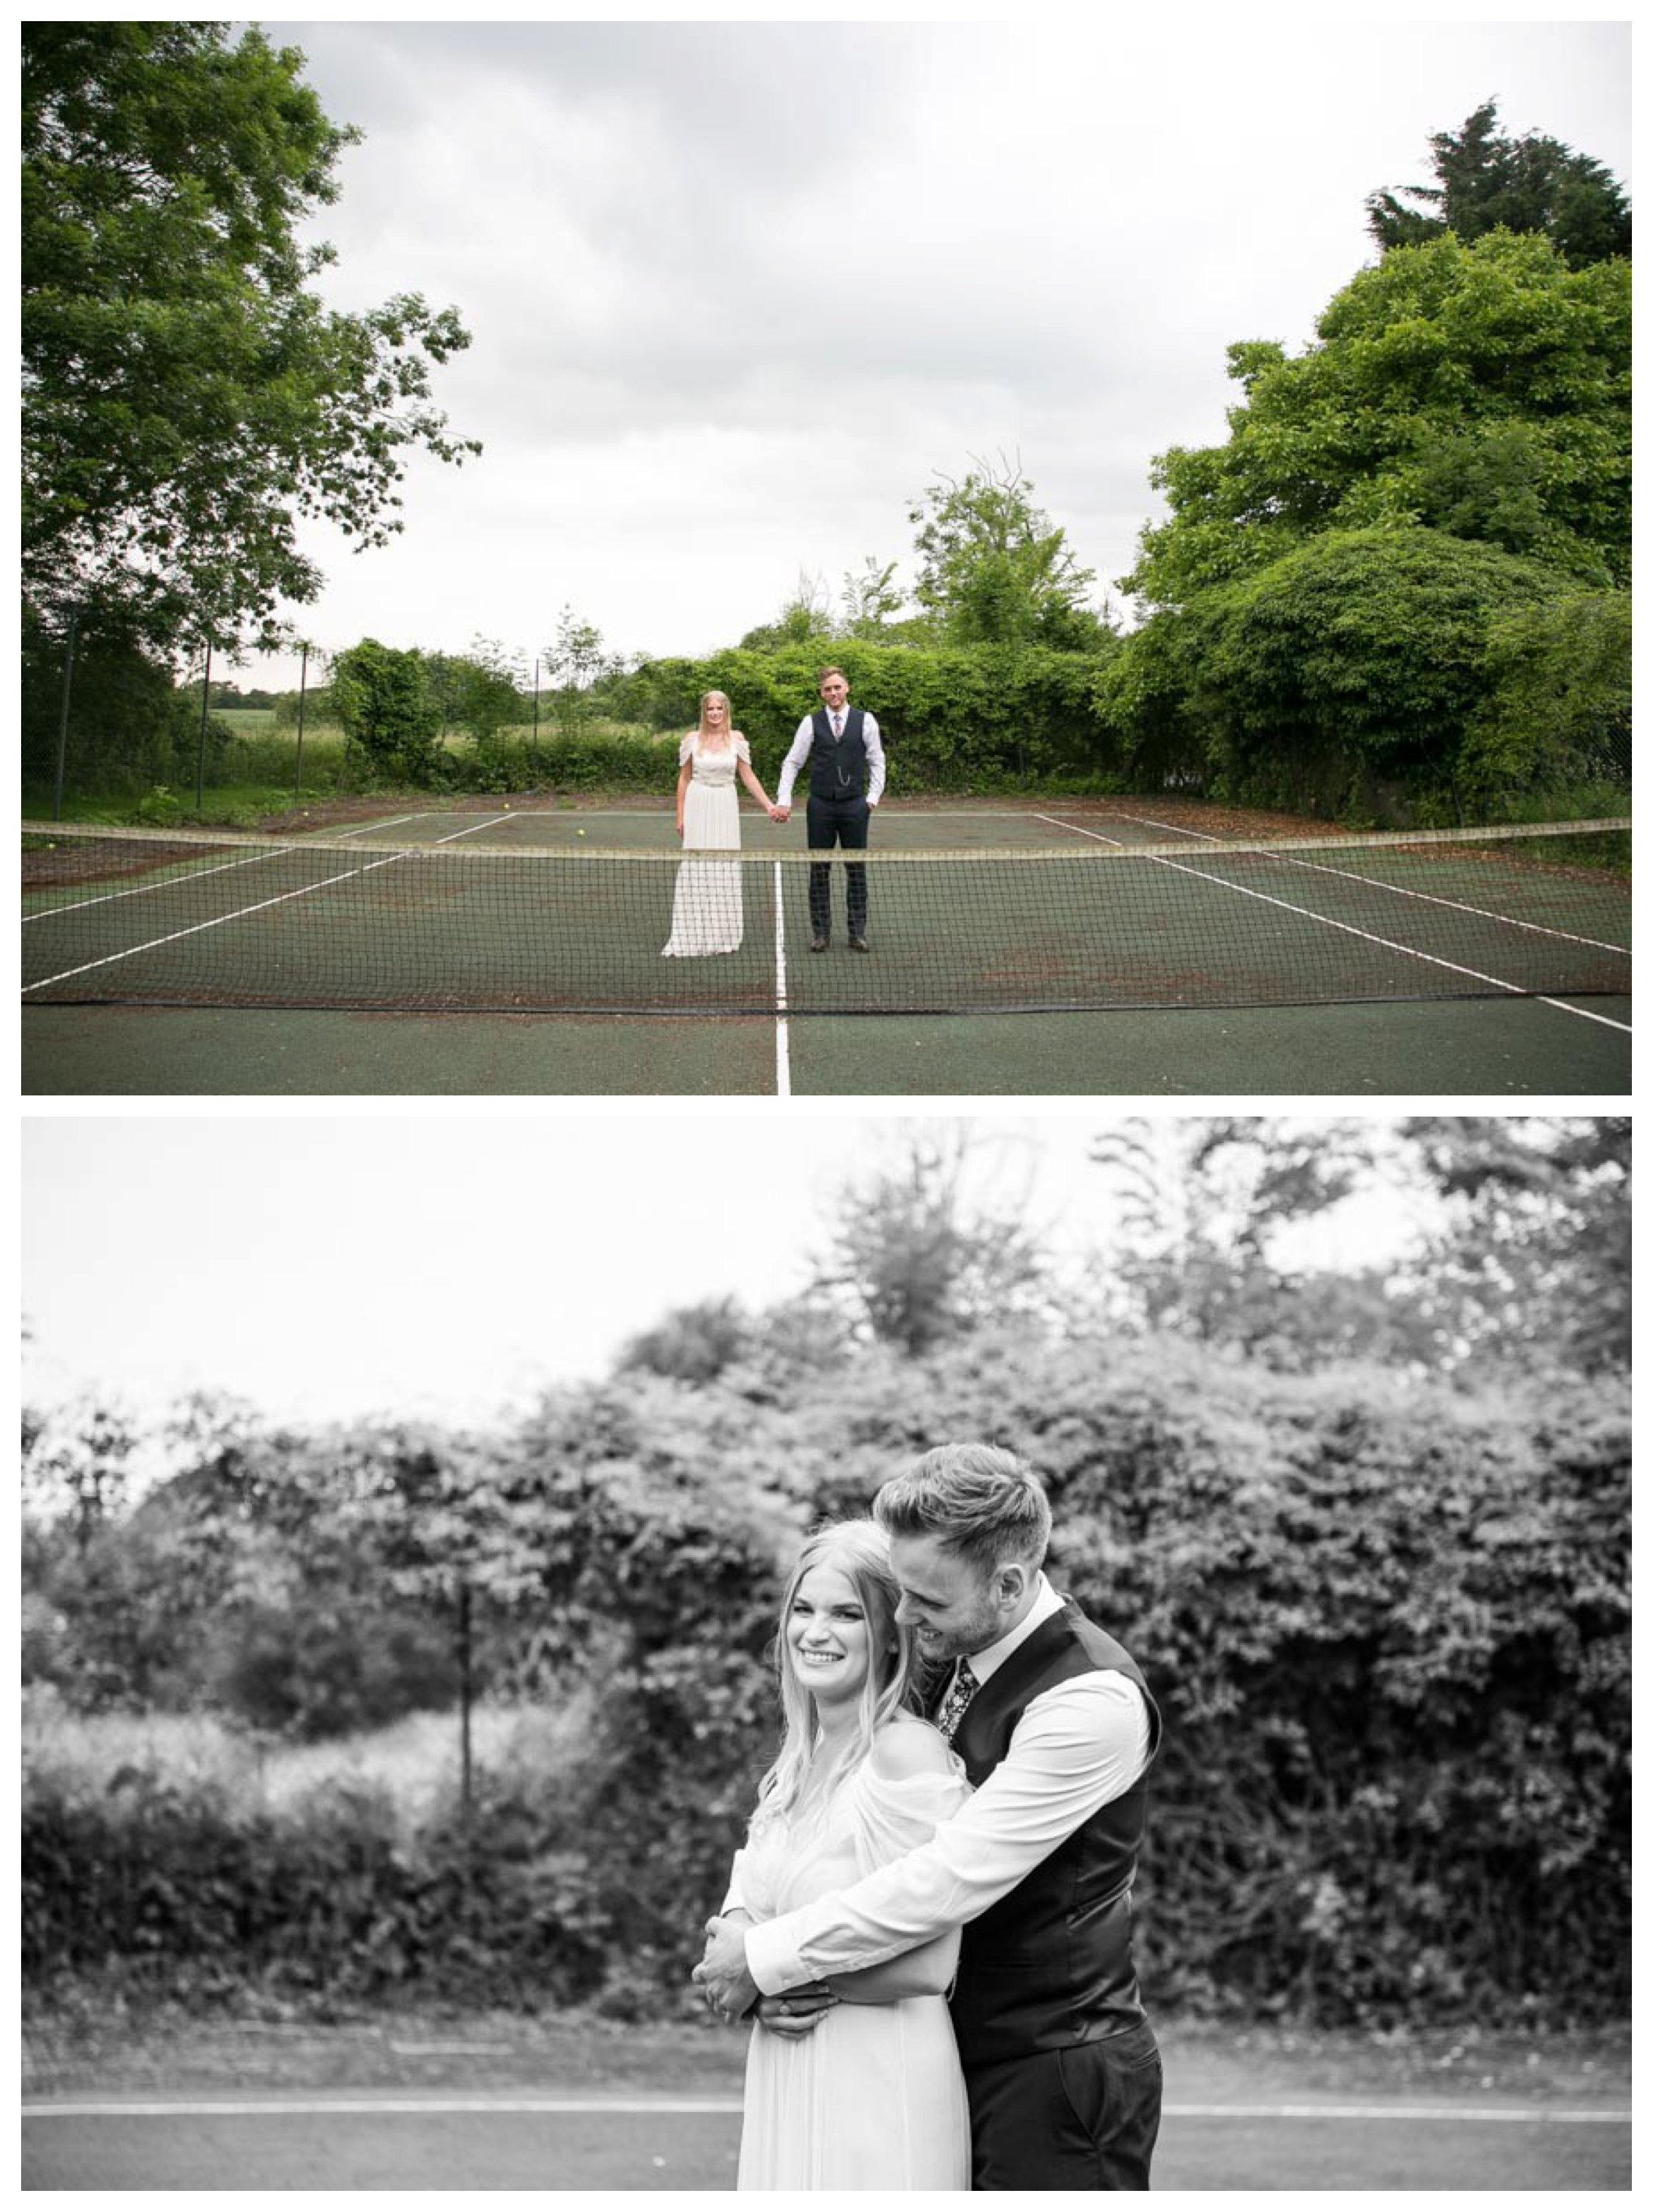 bride and groom stand on disused tennis court holding handa and cuddling